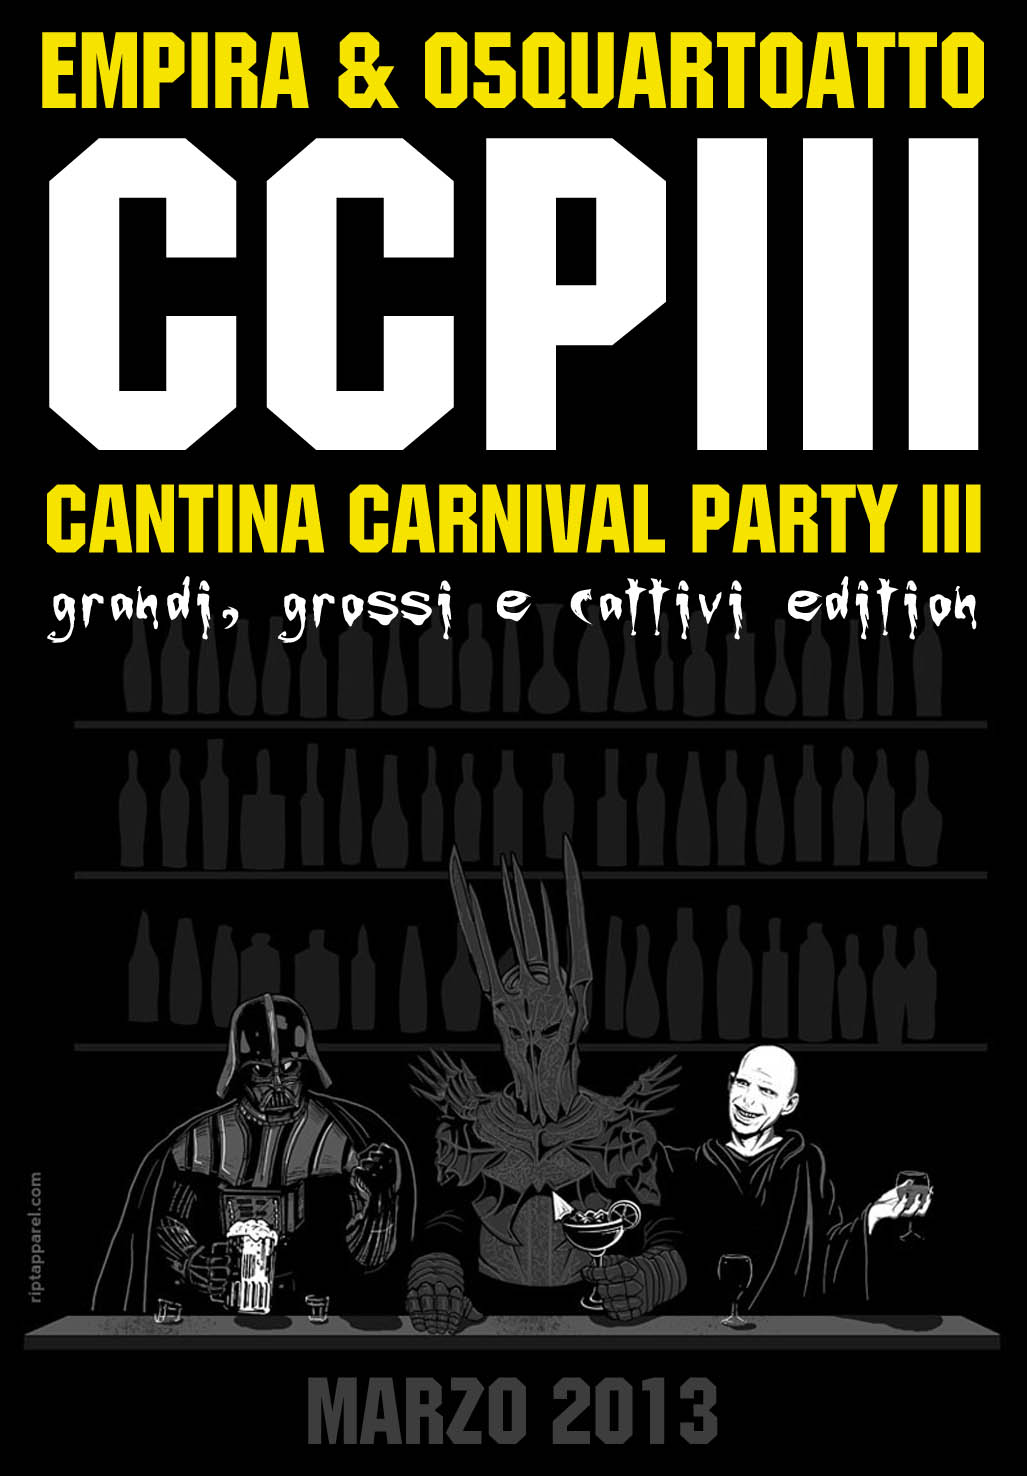 Cantina Carnival Party III